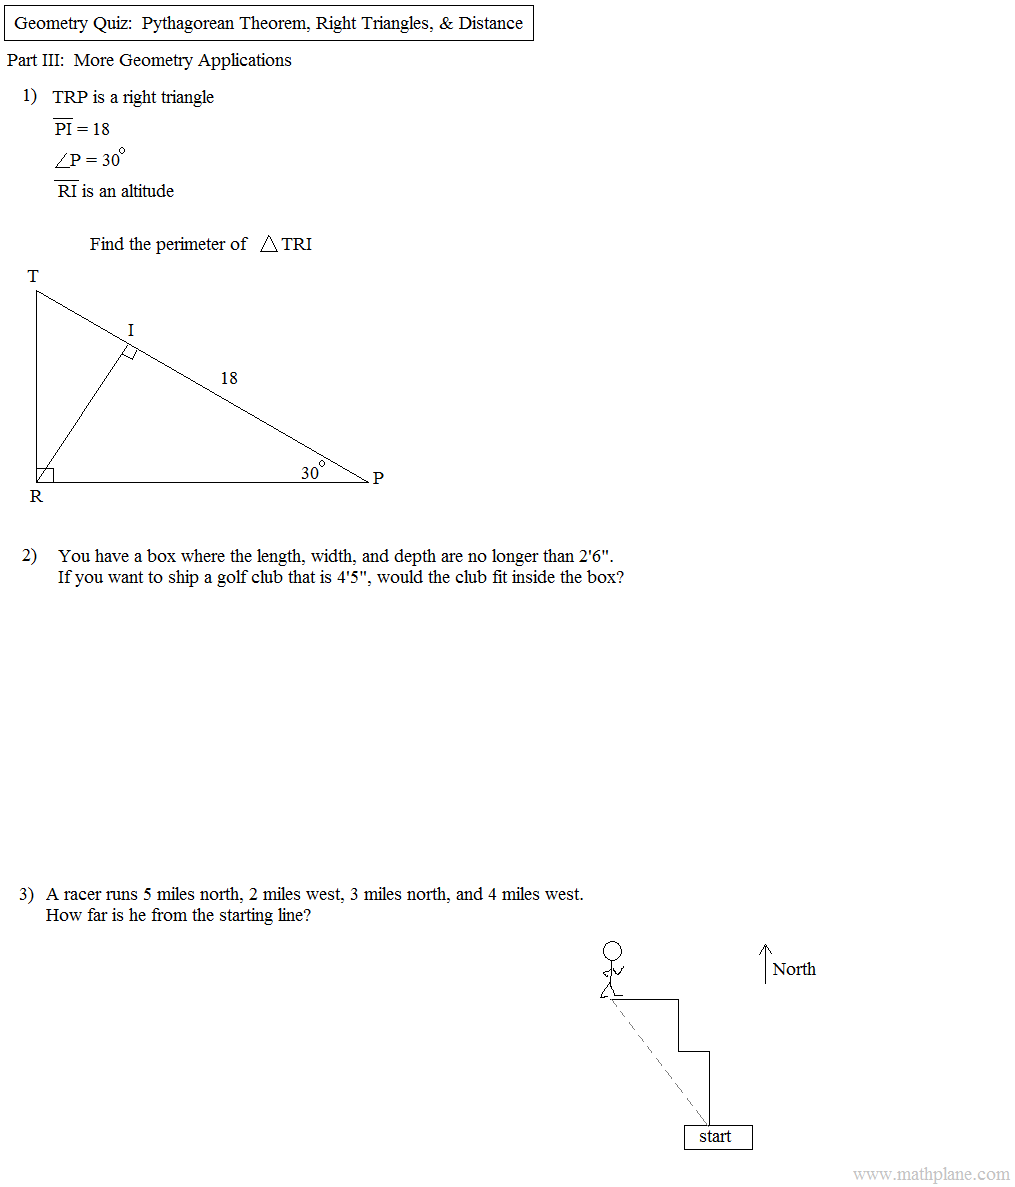 math plane pythagorean theorem distance  geometry pythagorean theorem application quiz